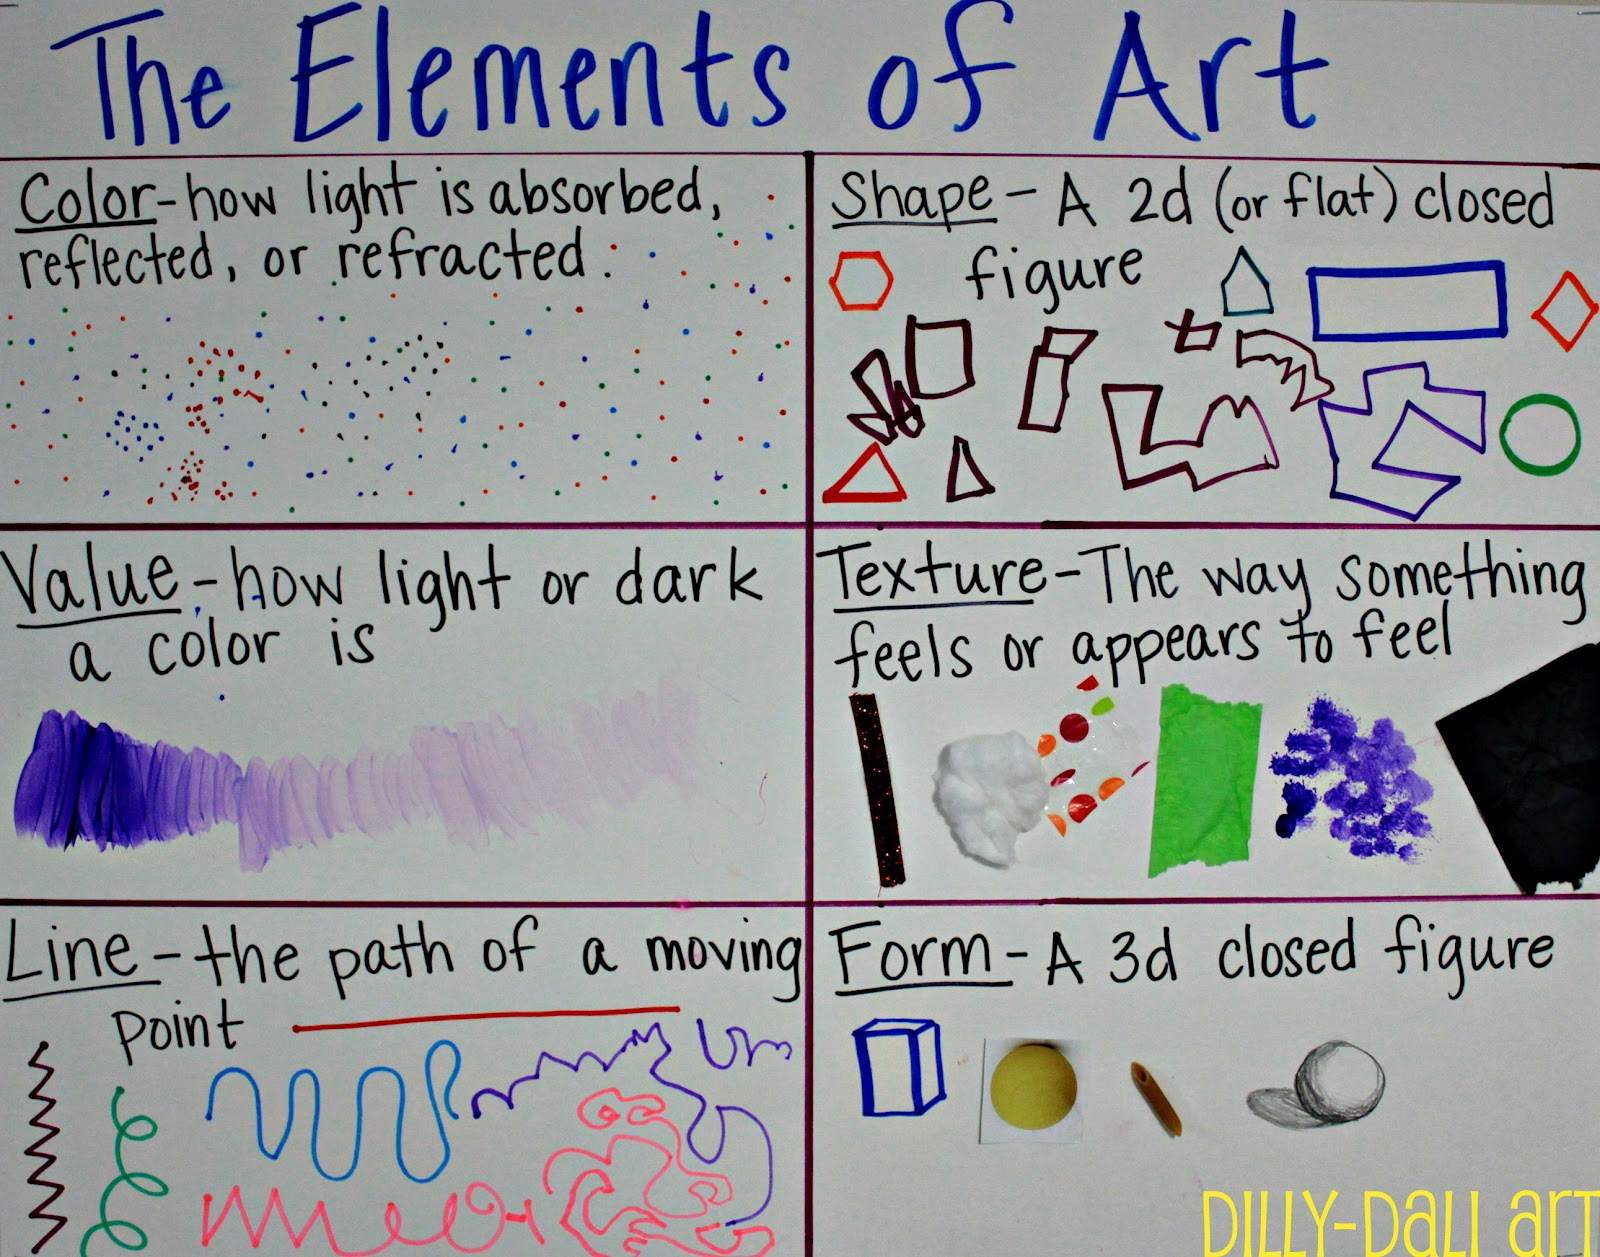 Visual Elements Of Art Examples : Dilly dali art elements of poster